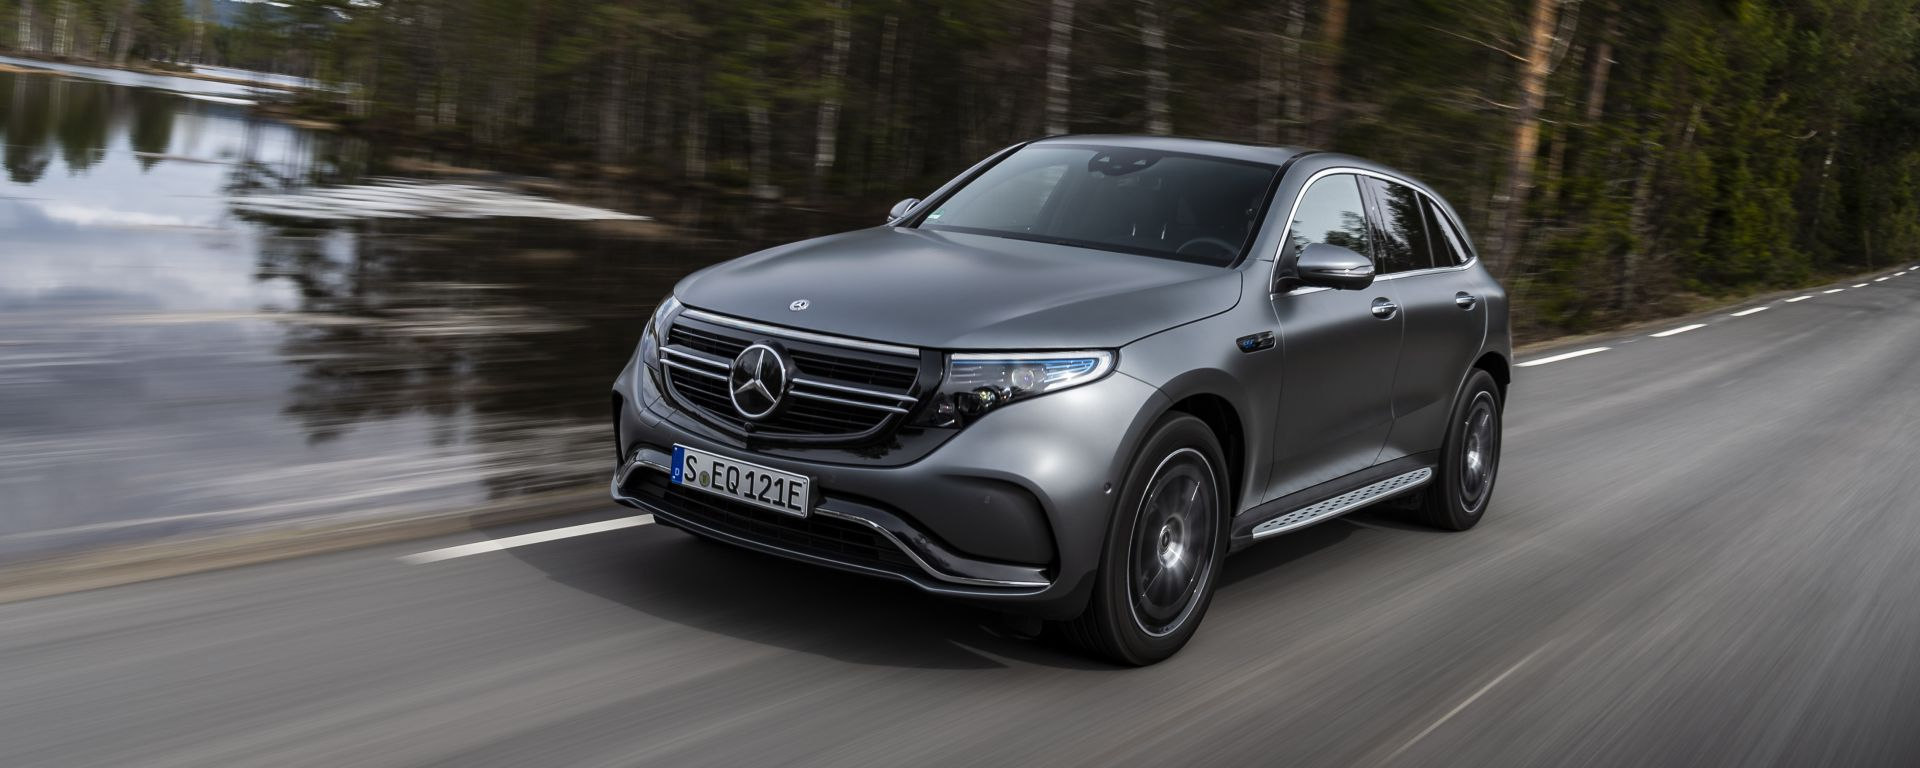 Mercedes EQC 400: in movimento